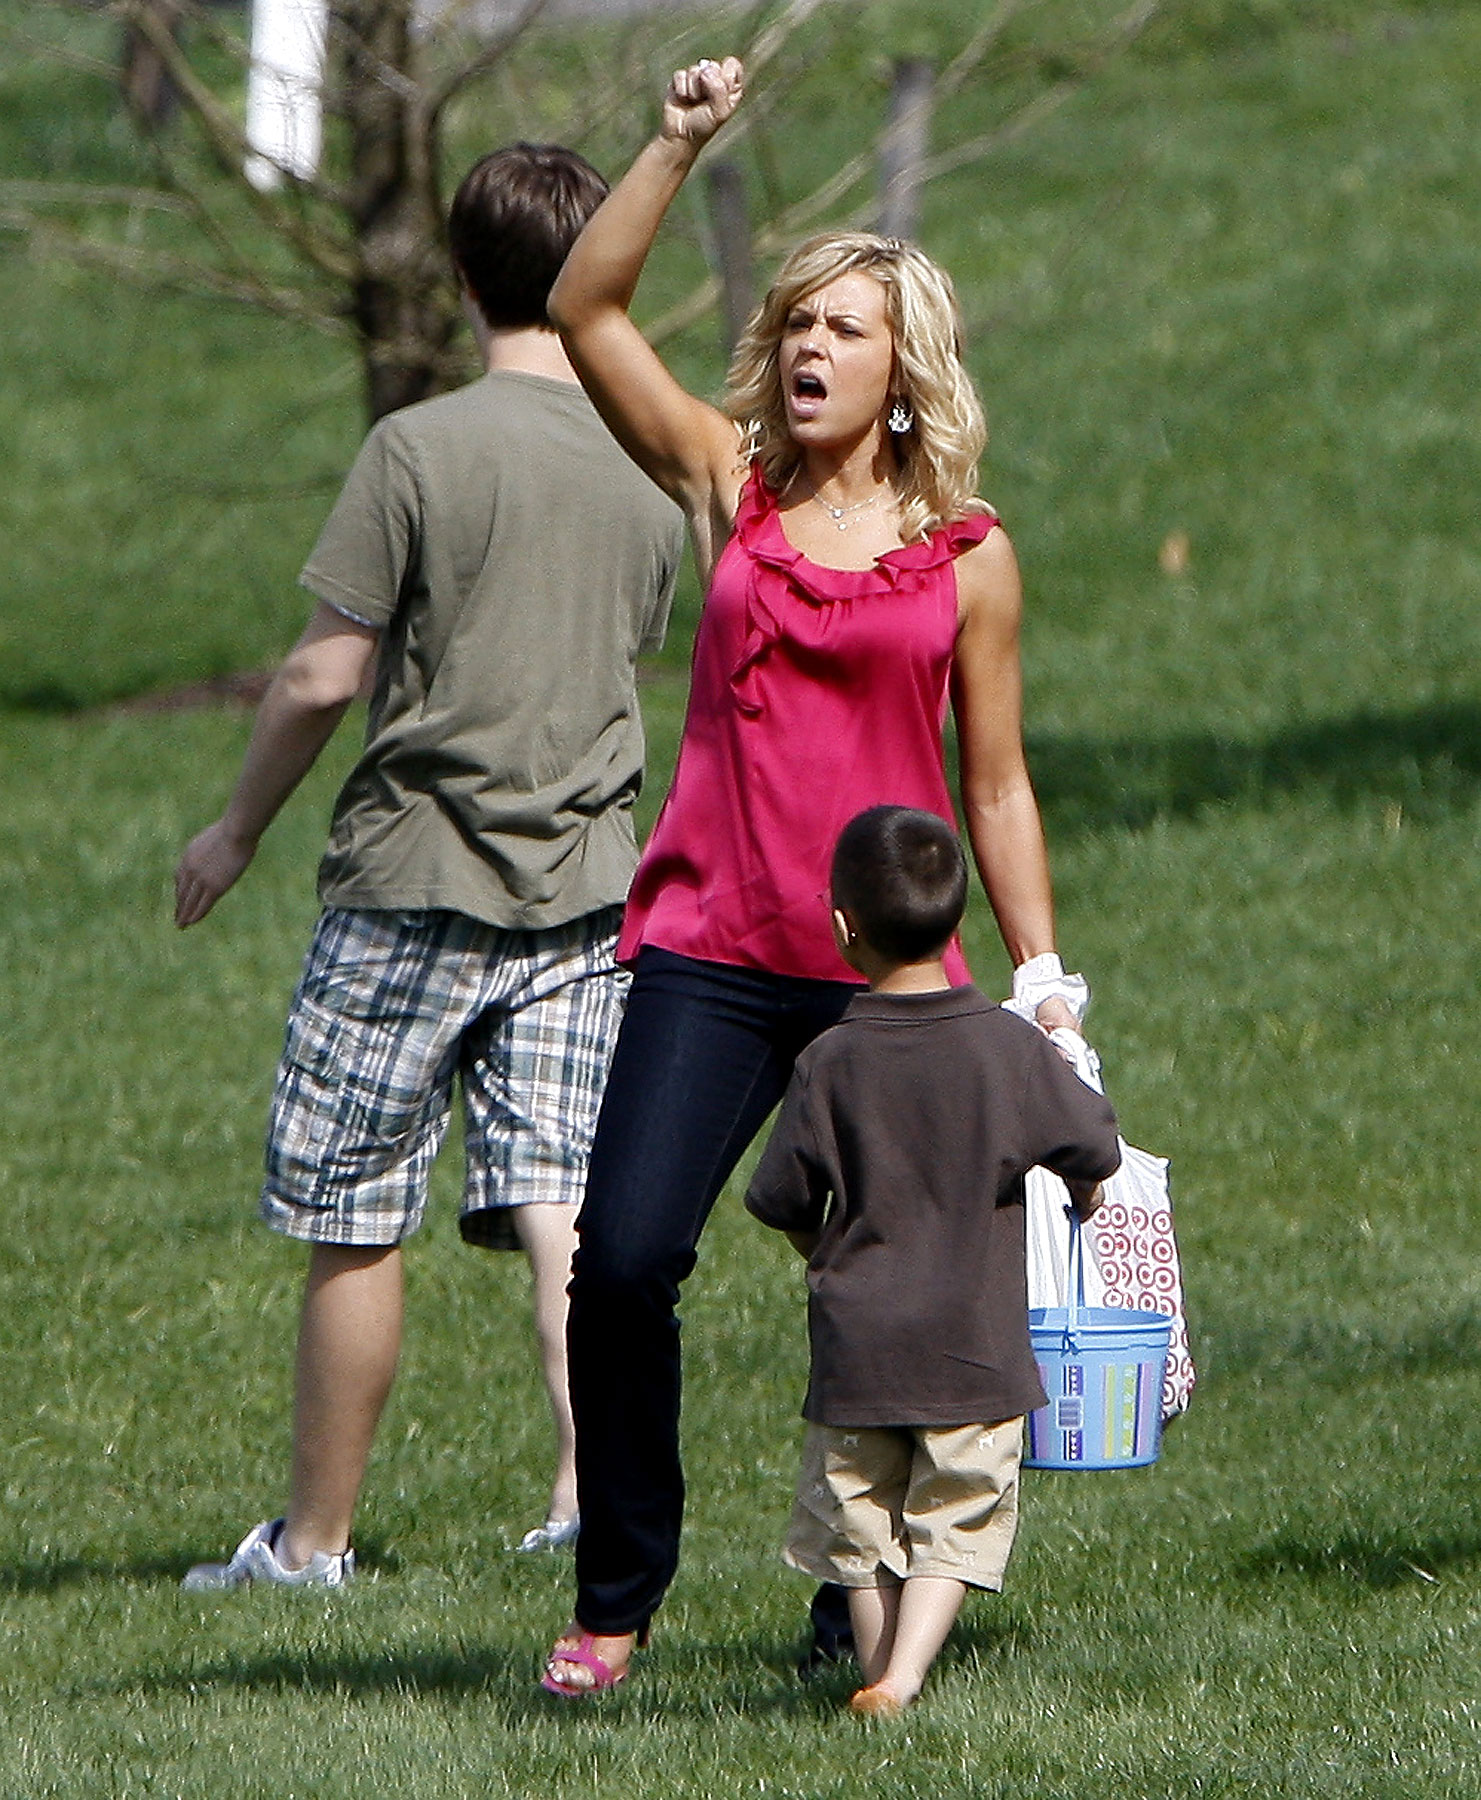 The Great Kate Gosselin Easter Egg Hunt (PHOTOS)